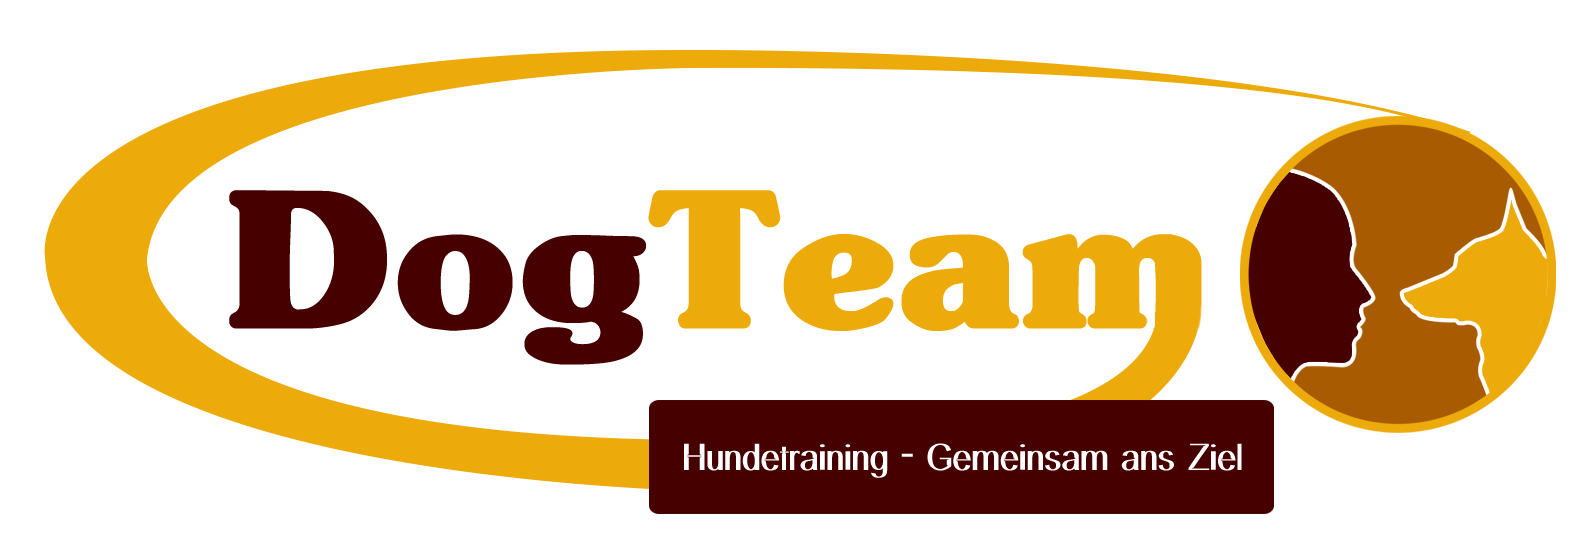 //www.dogteam-leibnitz.at/wp-content/uploads/2021/01/DogTeam-Logo-1-e1611385641468.png